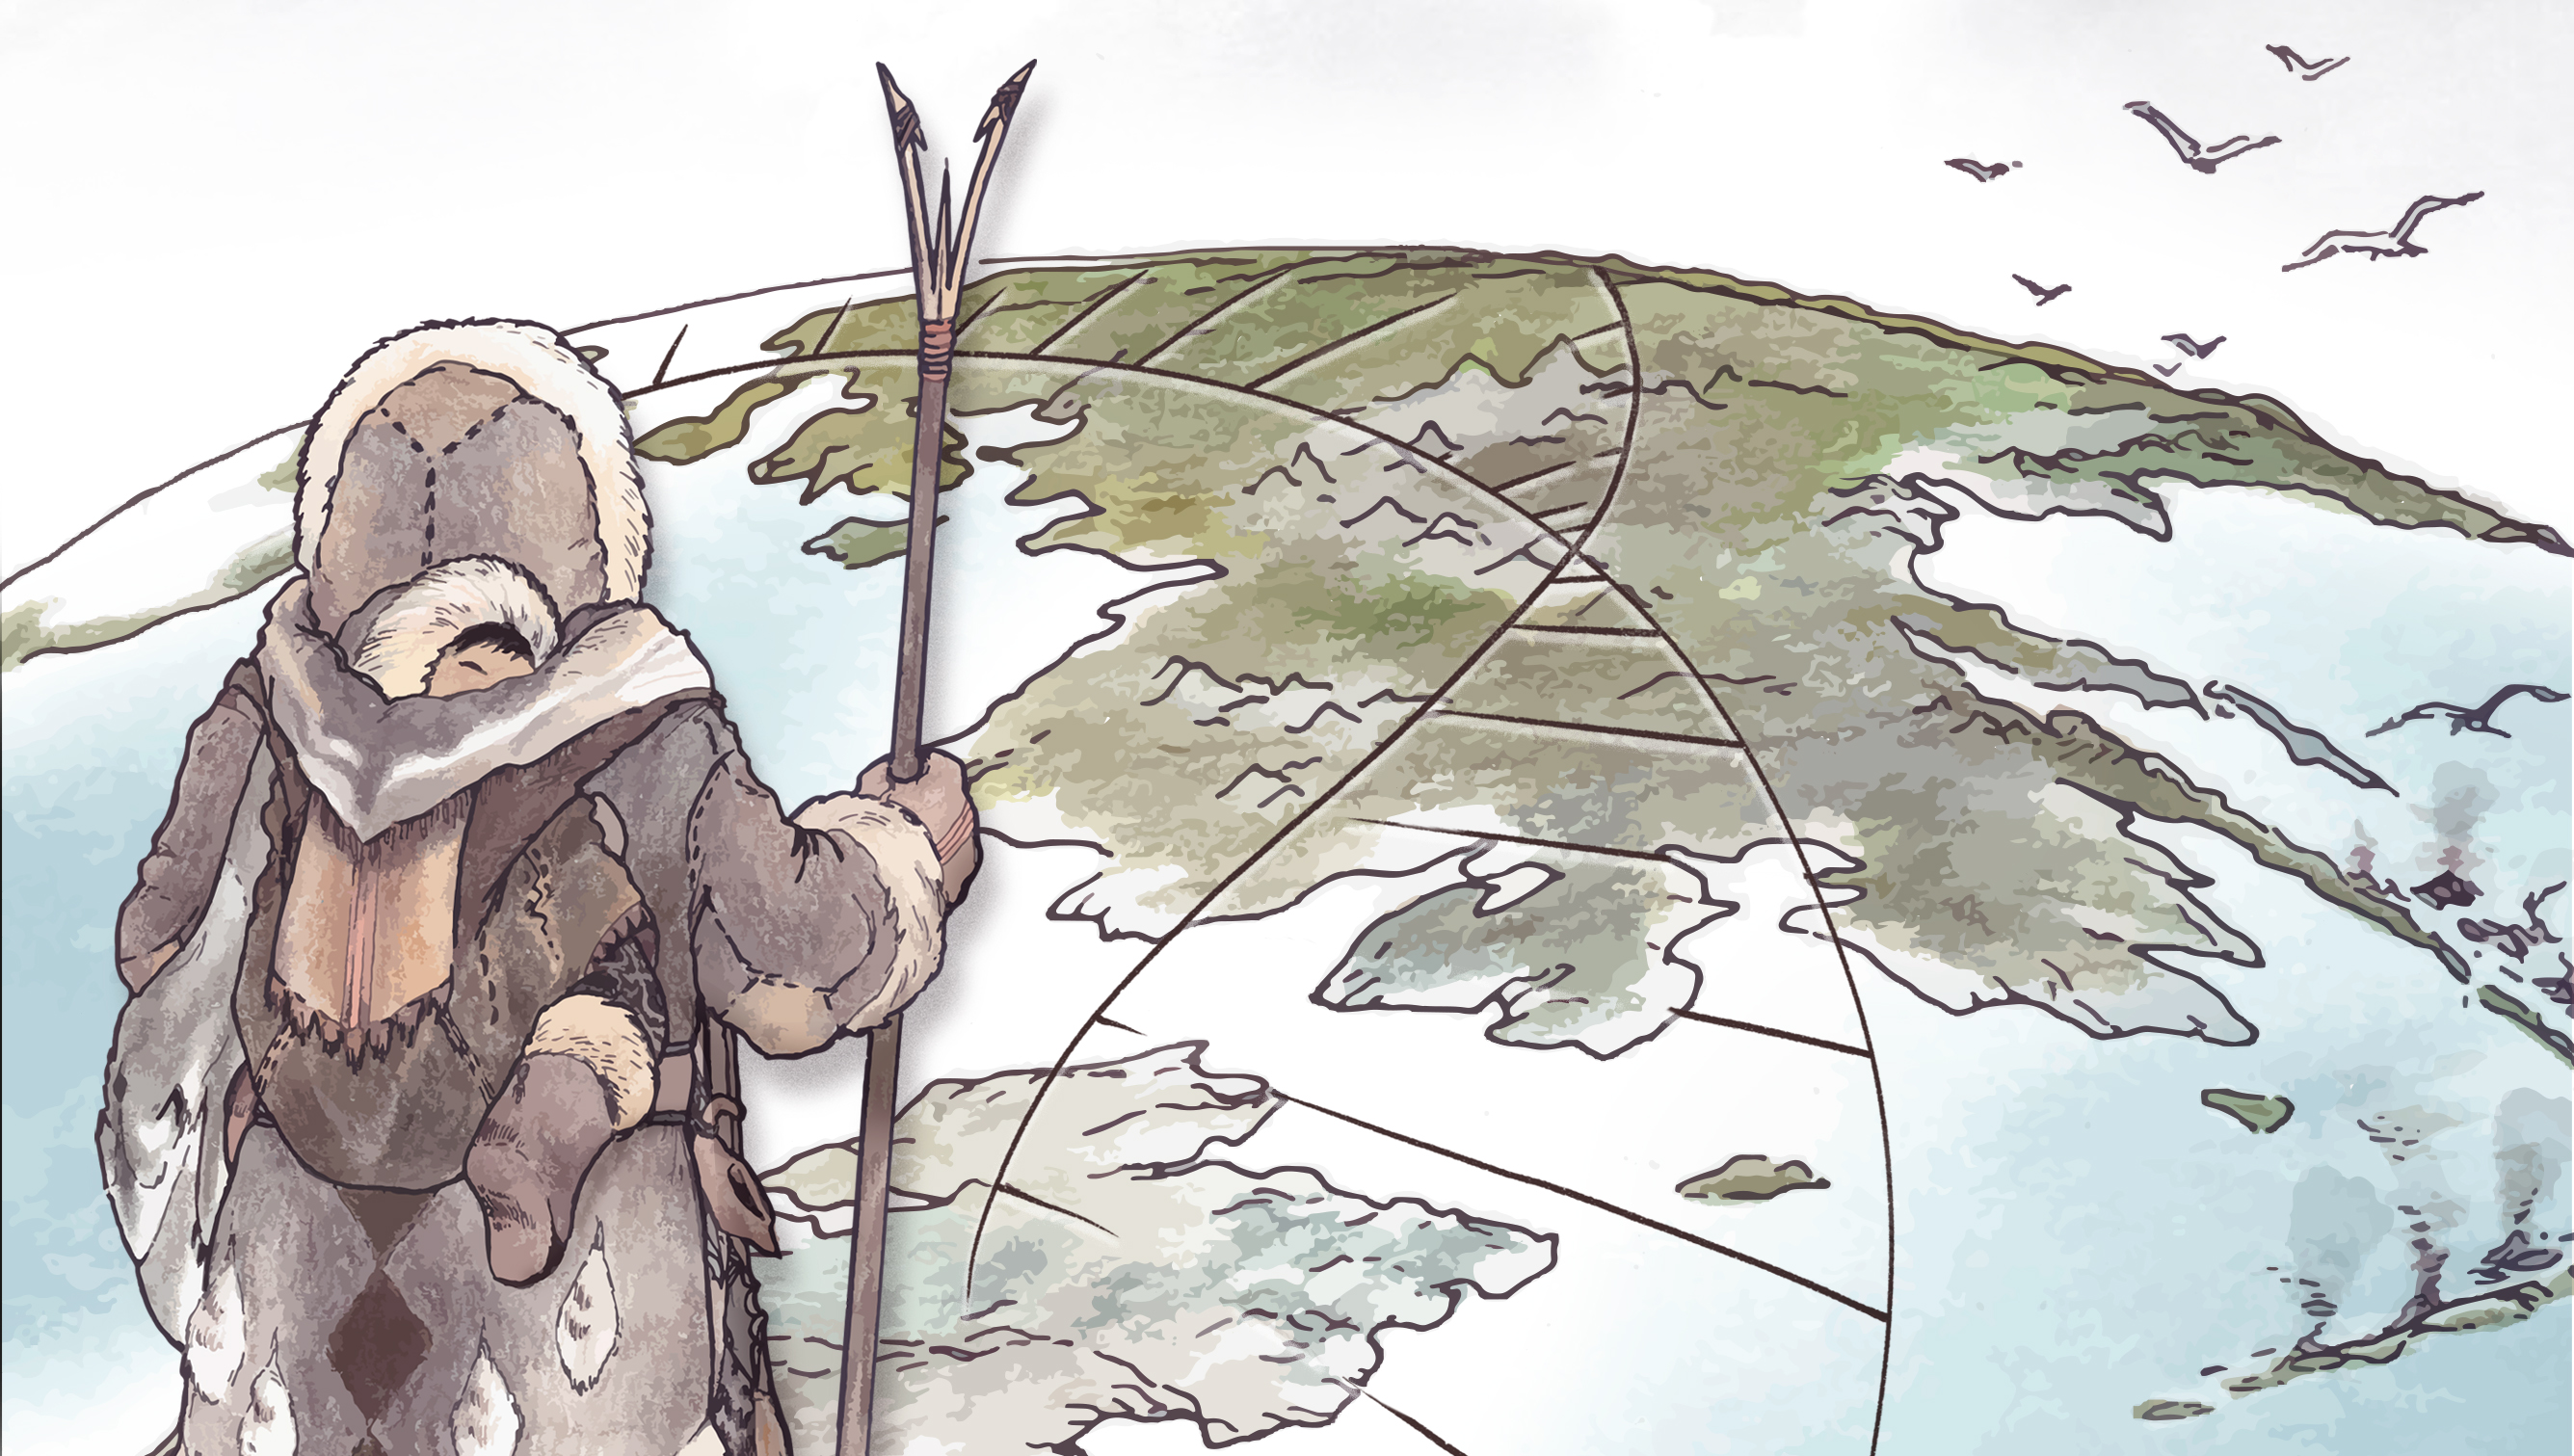 Paleo-Eskimos migrated from Chukotka to America about 4,500 years ago.